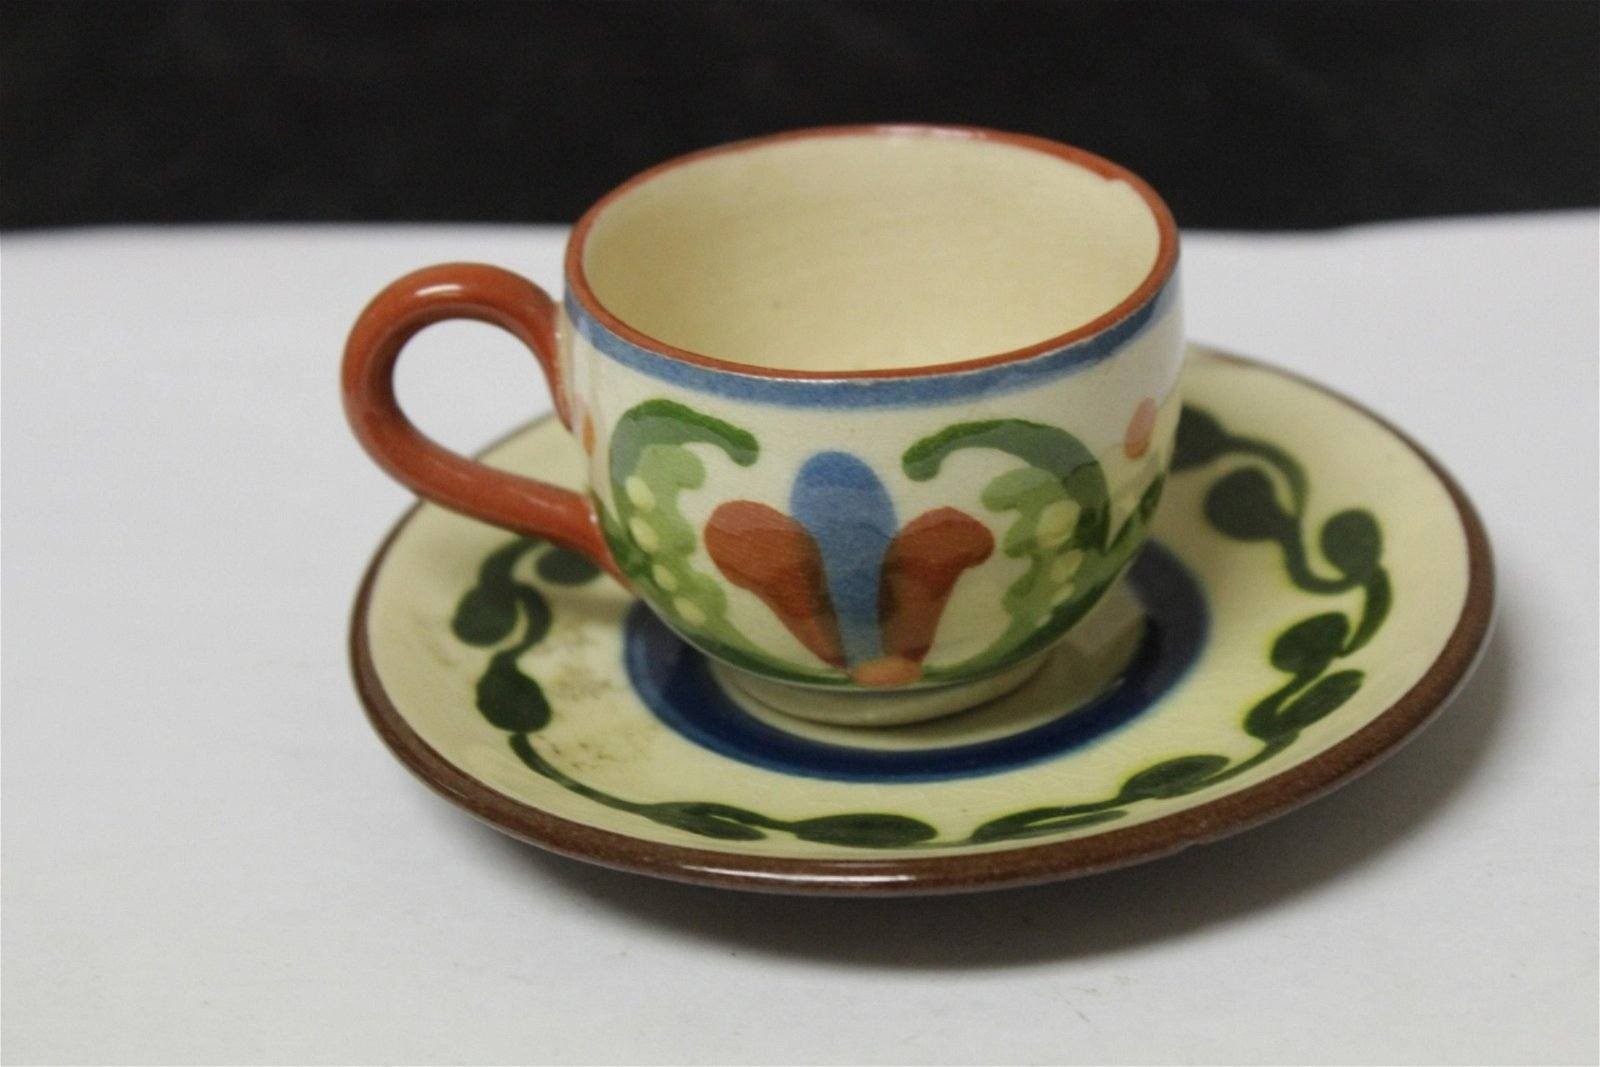 A Vintage Royal Torguay Ceramic Cup and Saucer